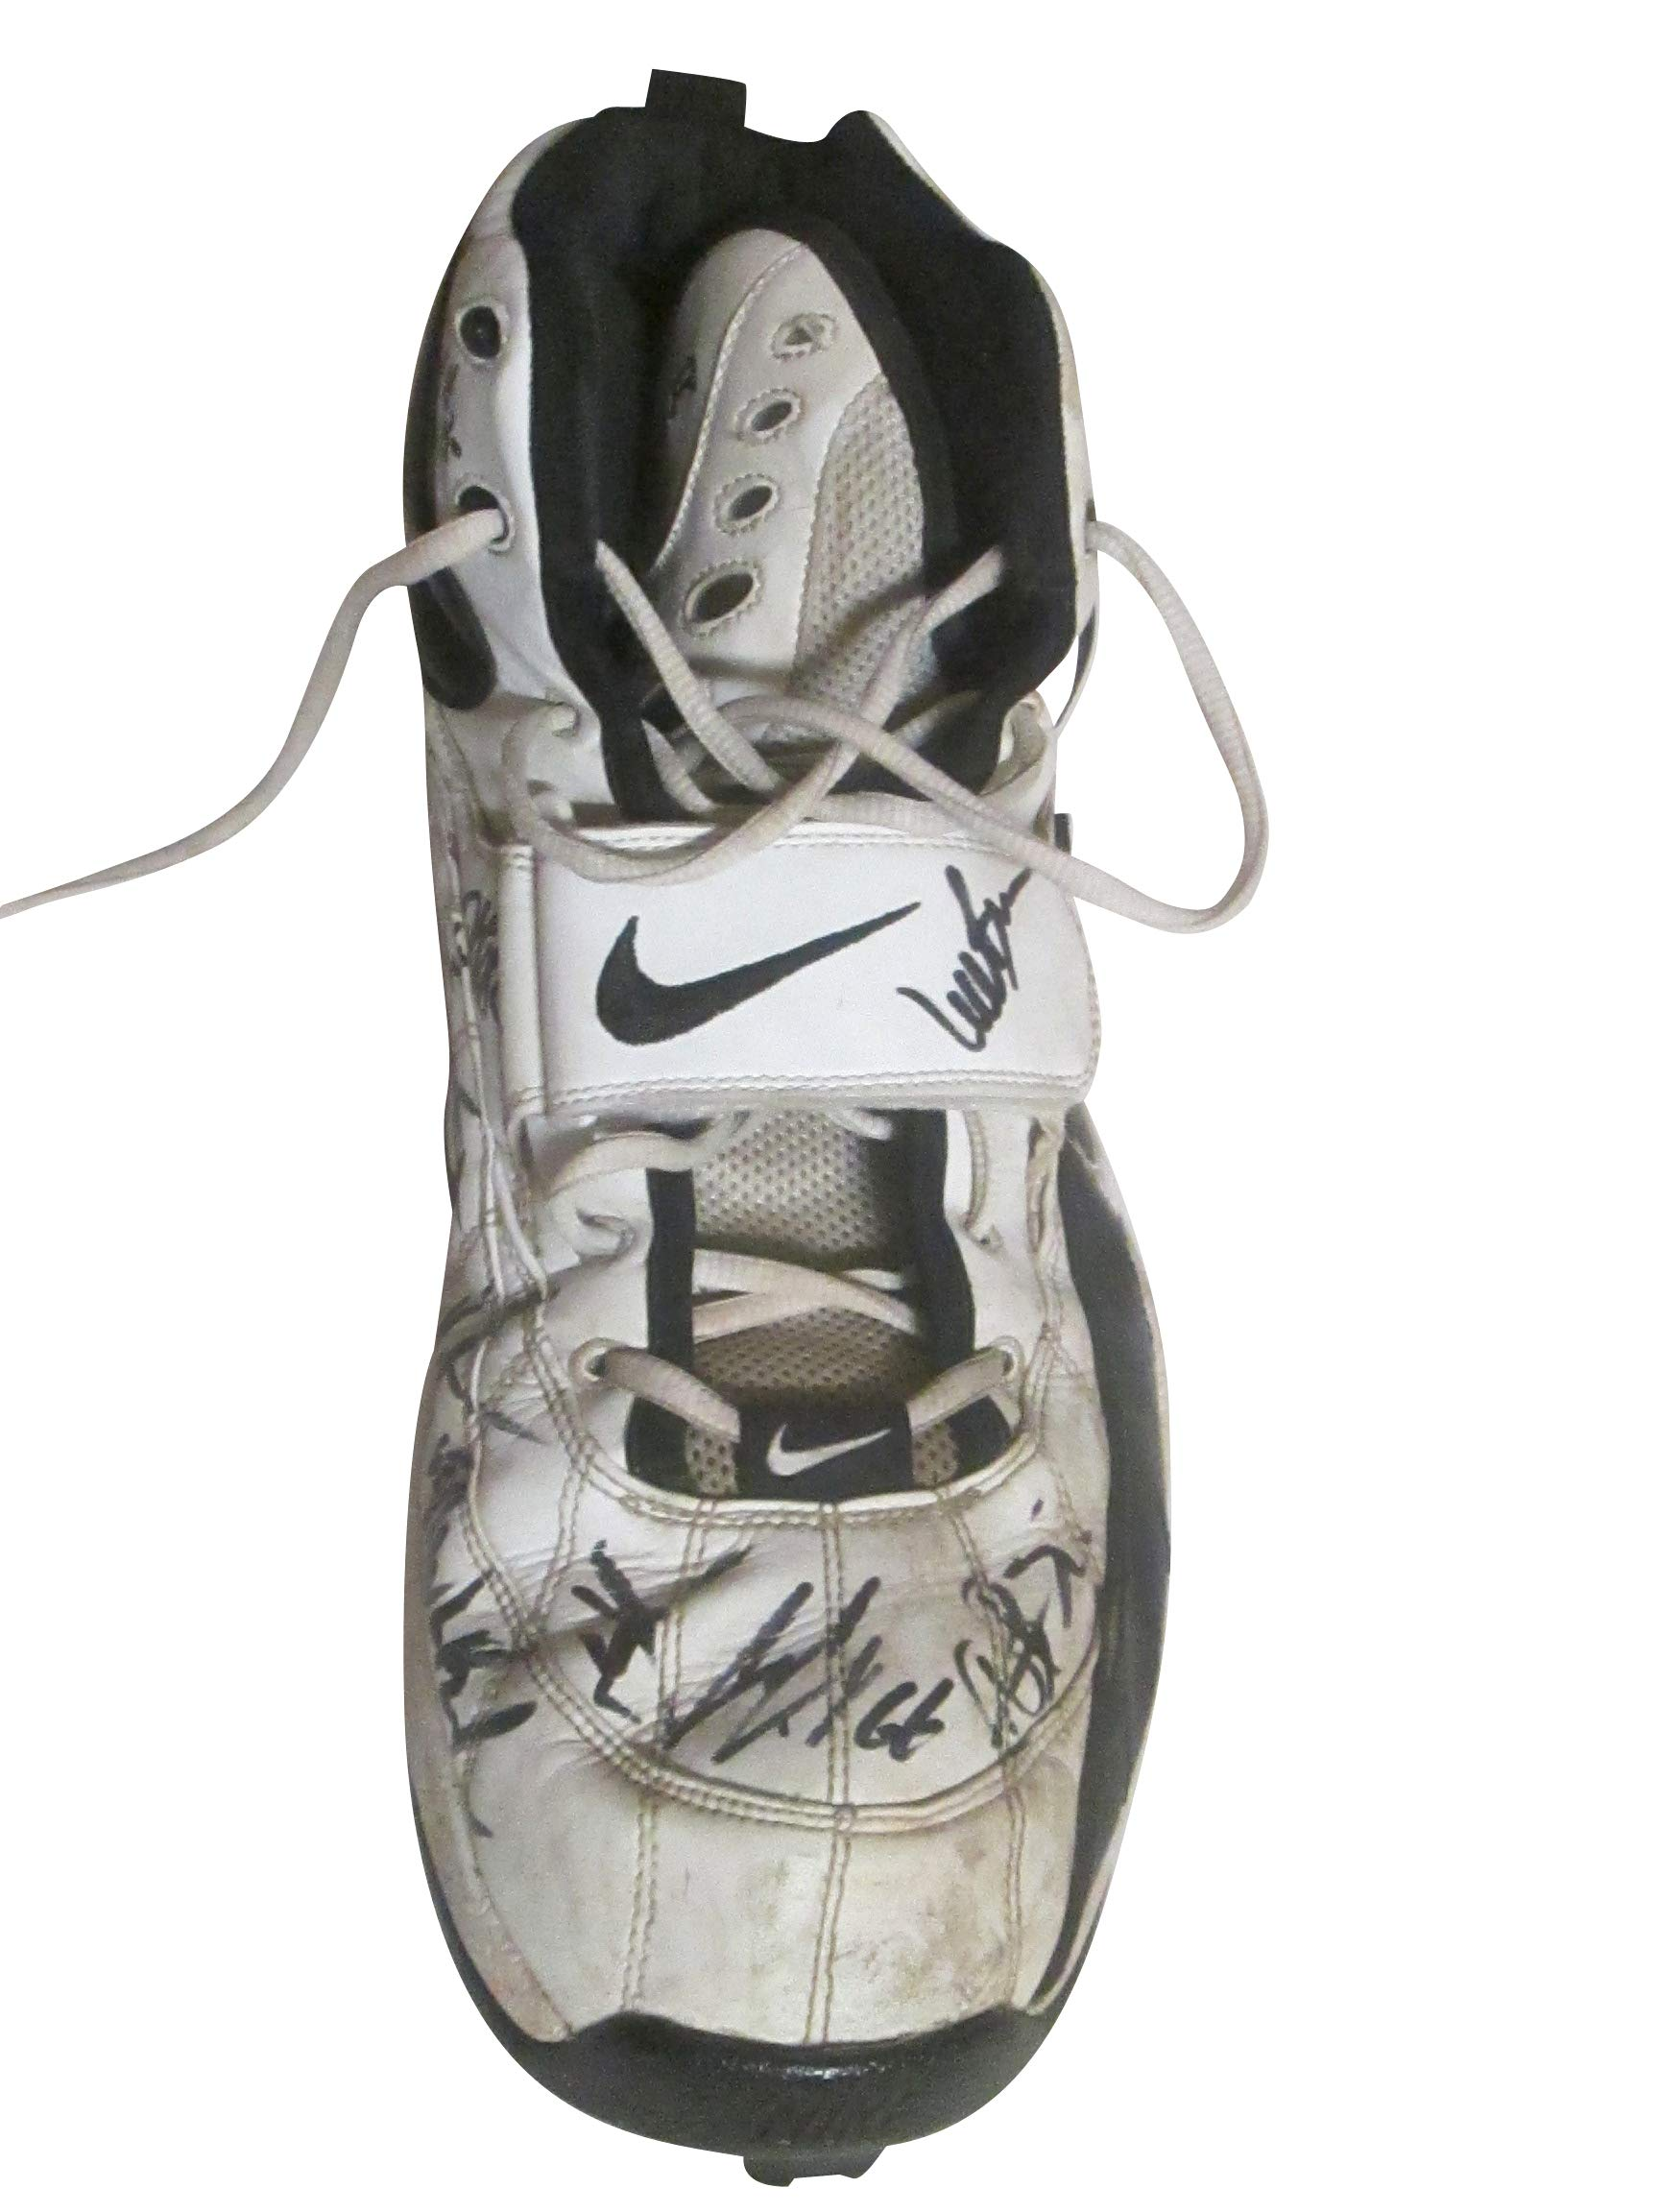 Oakland Raiders Team Autographed Game Used Nike Football Cleat Shoe with Proof Photos of Signing and COA